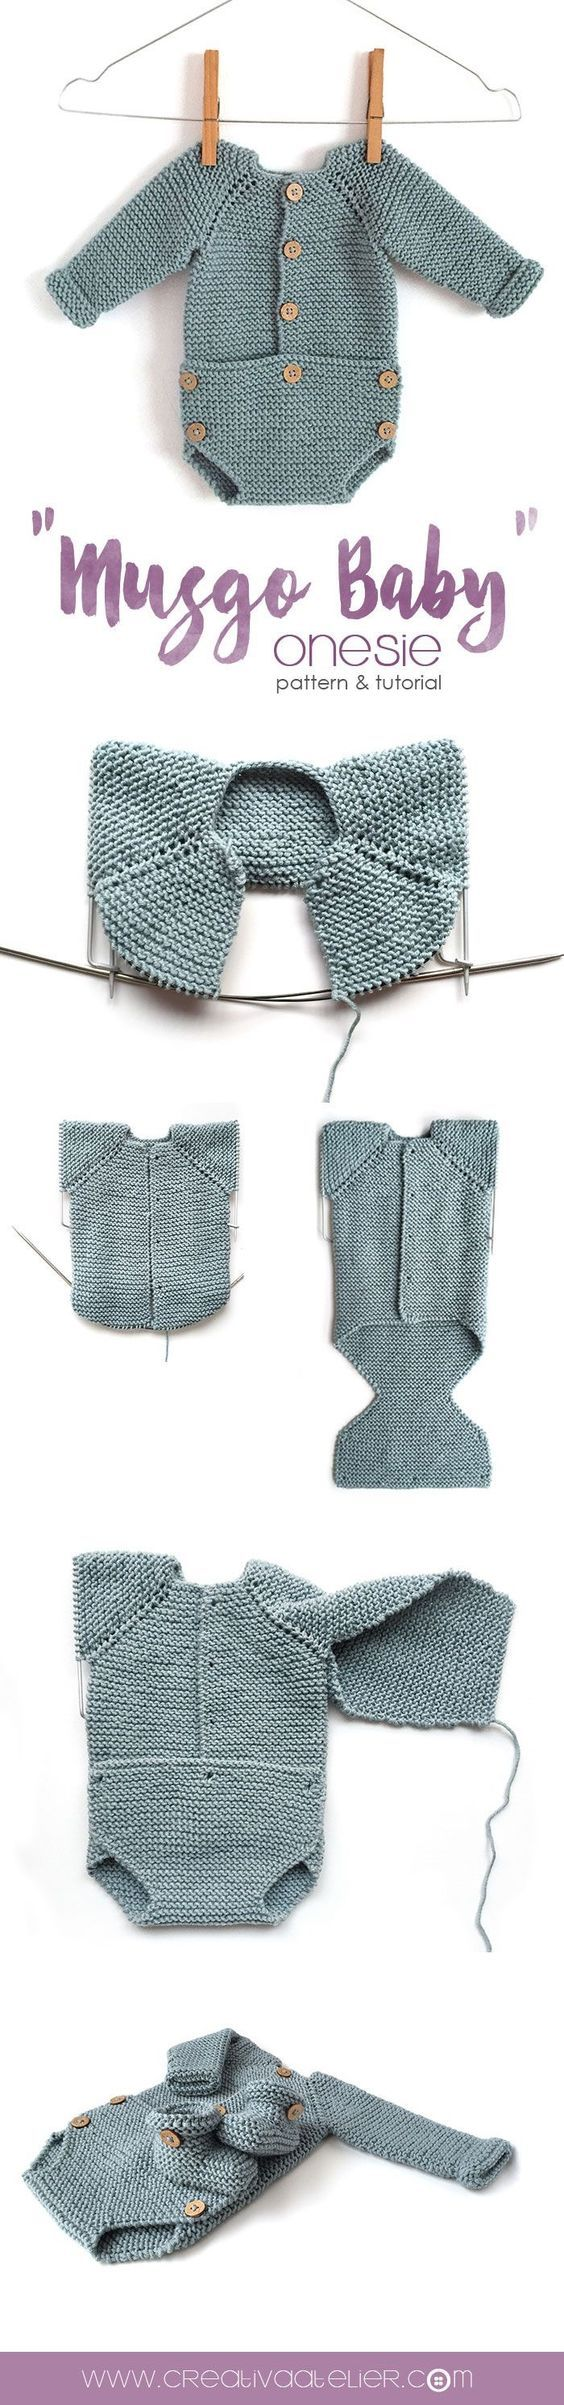 90 best sueter images on Pinterest | Knitting stitches, Baby ...